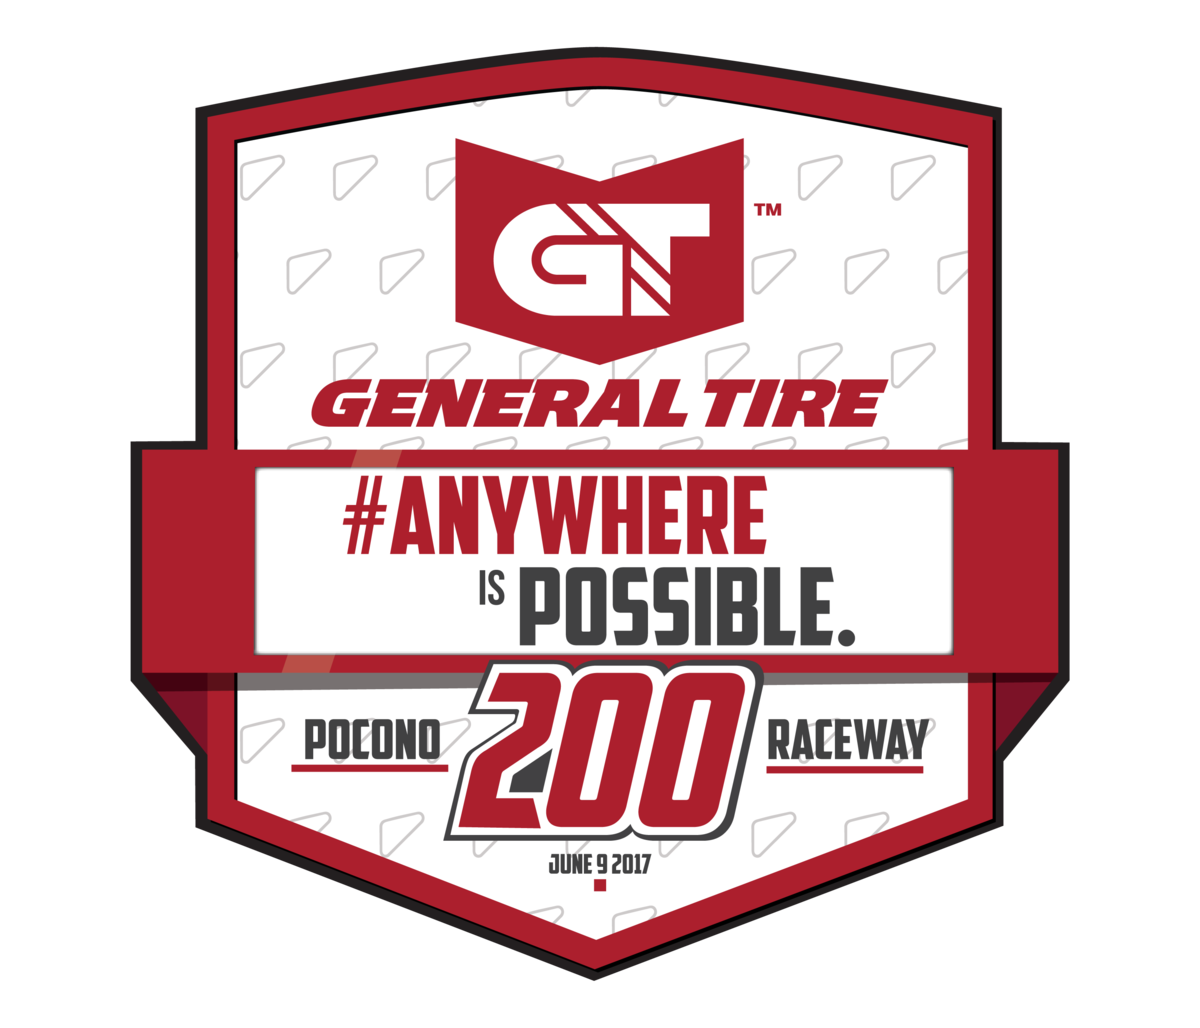 Generaltire#anywhereispossible200